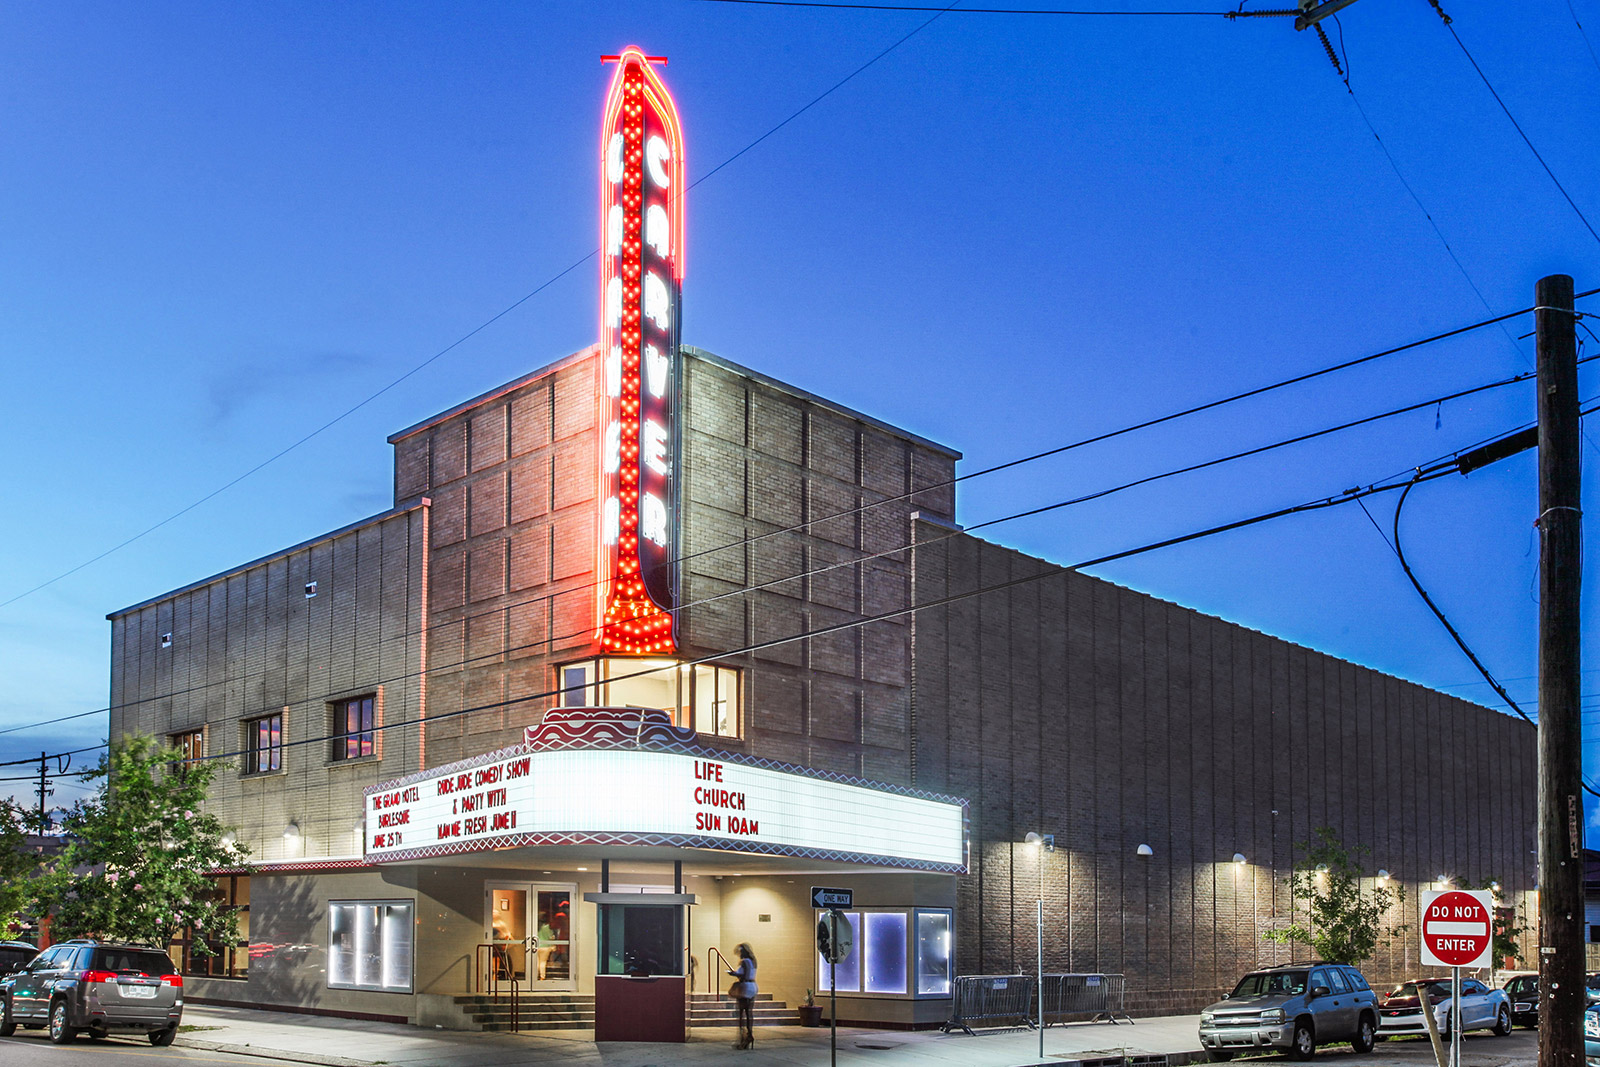 Carver Theatre, 2101 Orleans Avenue, New Orleans